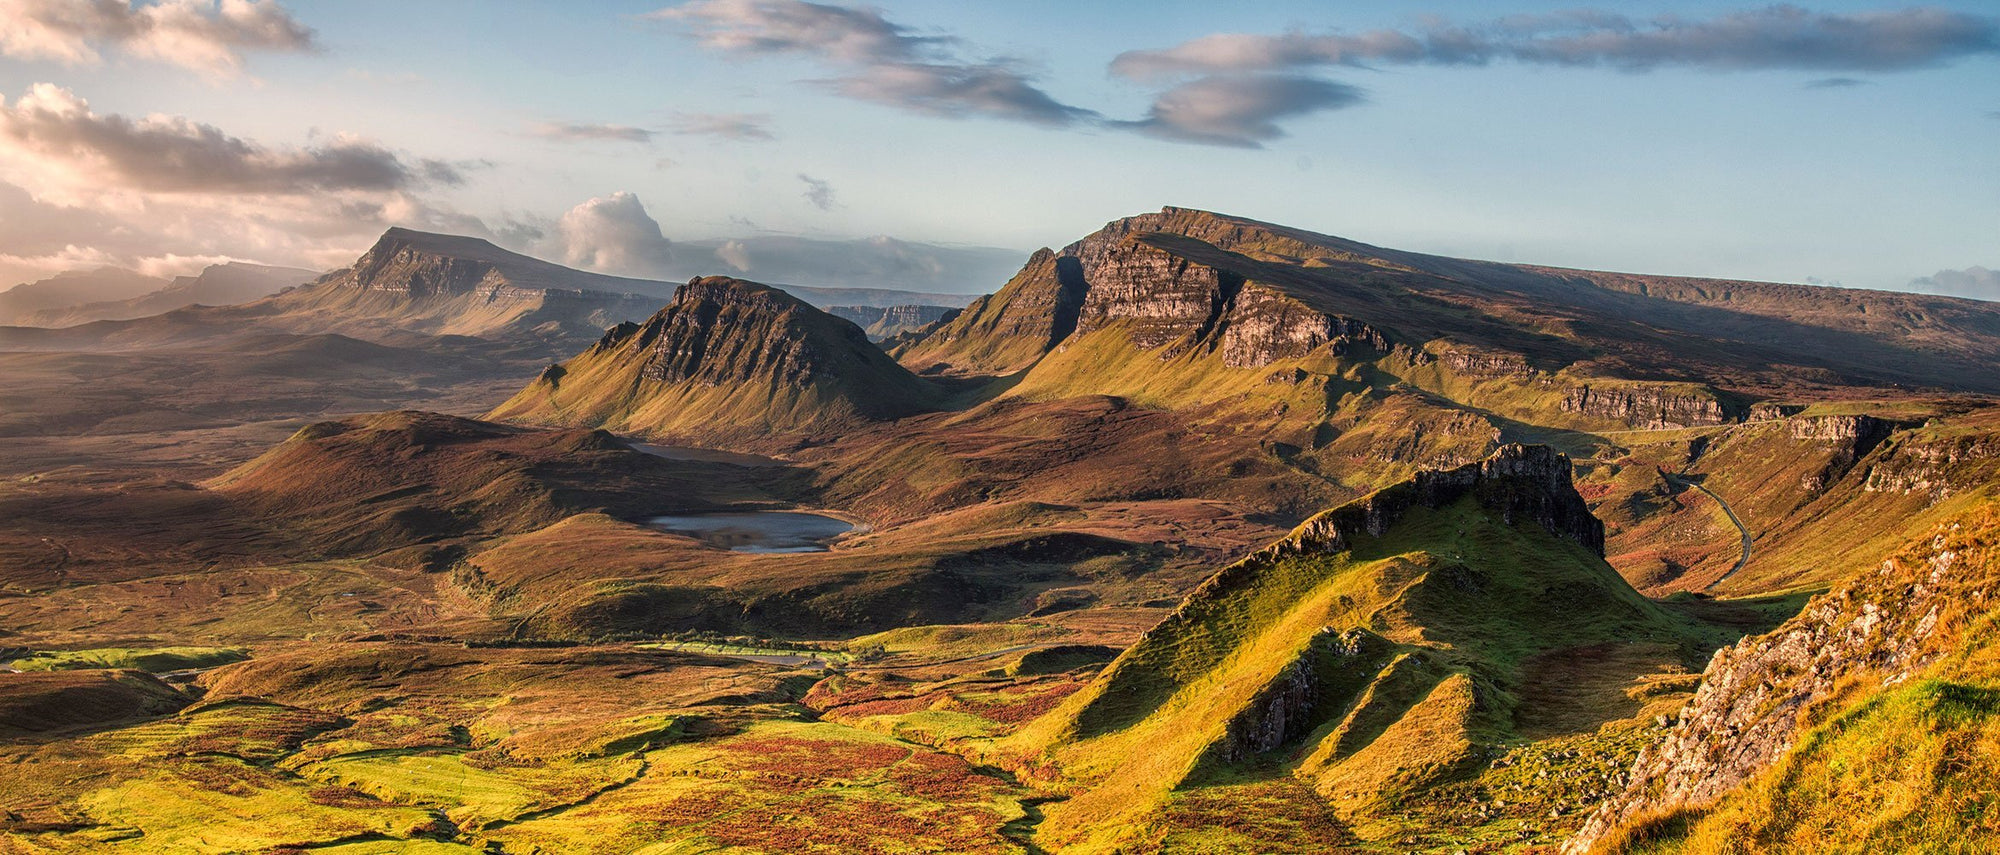 Unmissable: Scotland in Autumn | WildBounds